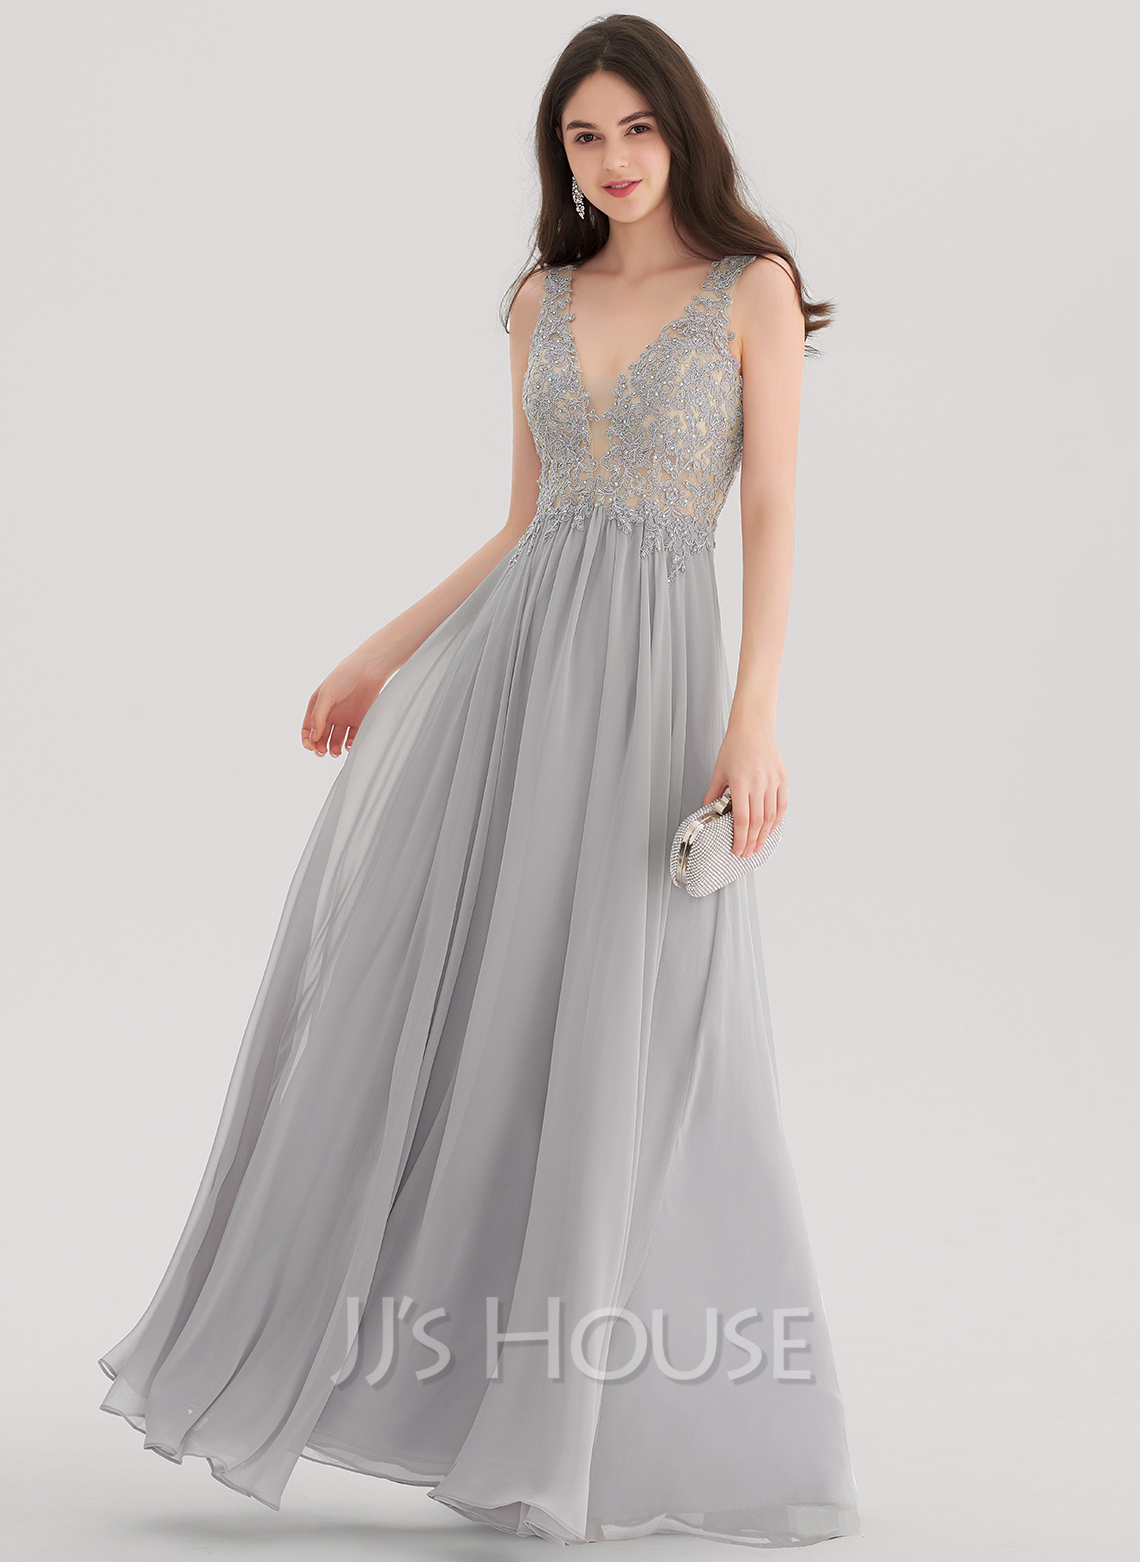 42b051f853d0 A-Line/Princess V-neck Floor-Length Chiffon Prom Dresses With Beading